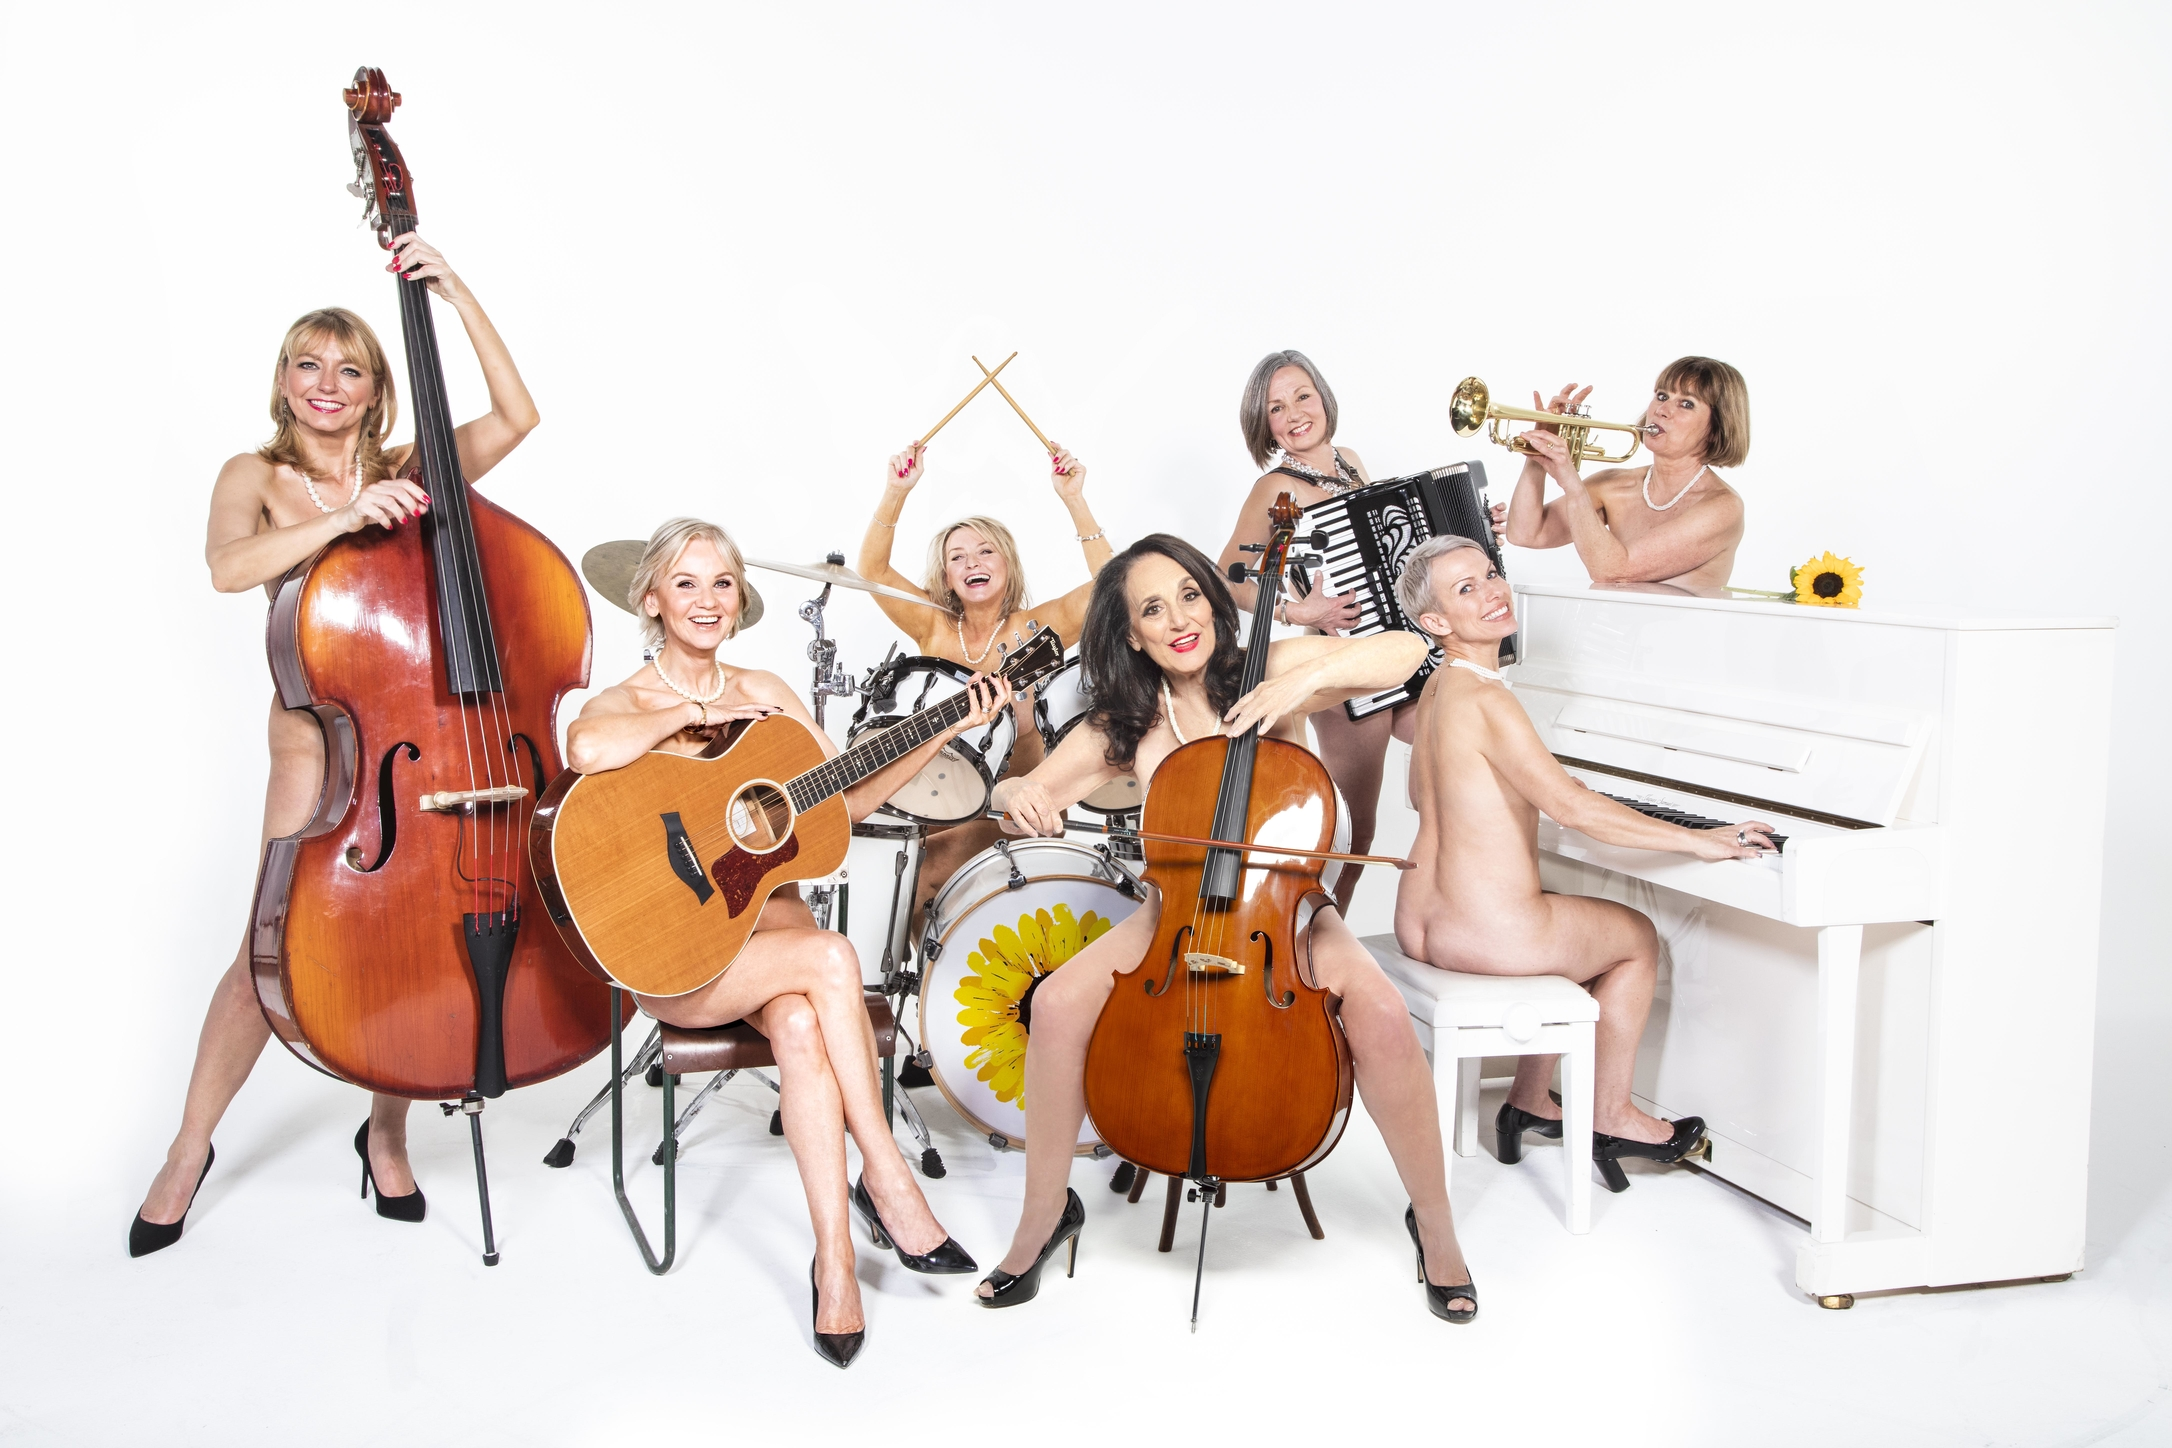 Calendar Girls The Musical plays The Bristol Hippodrome from July 9-20